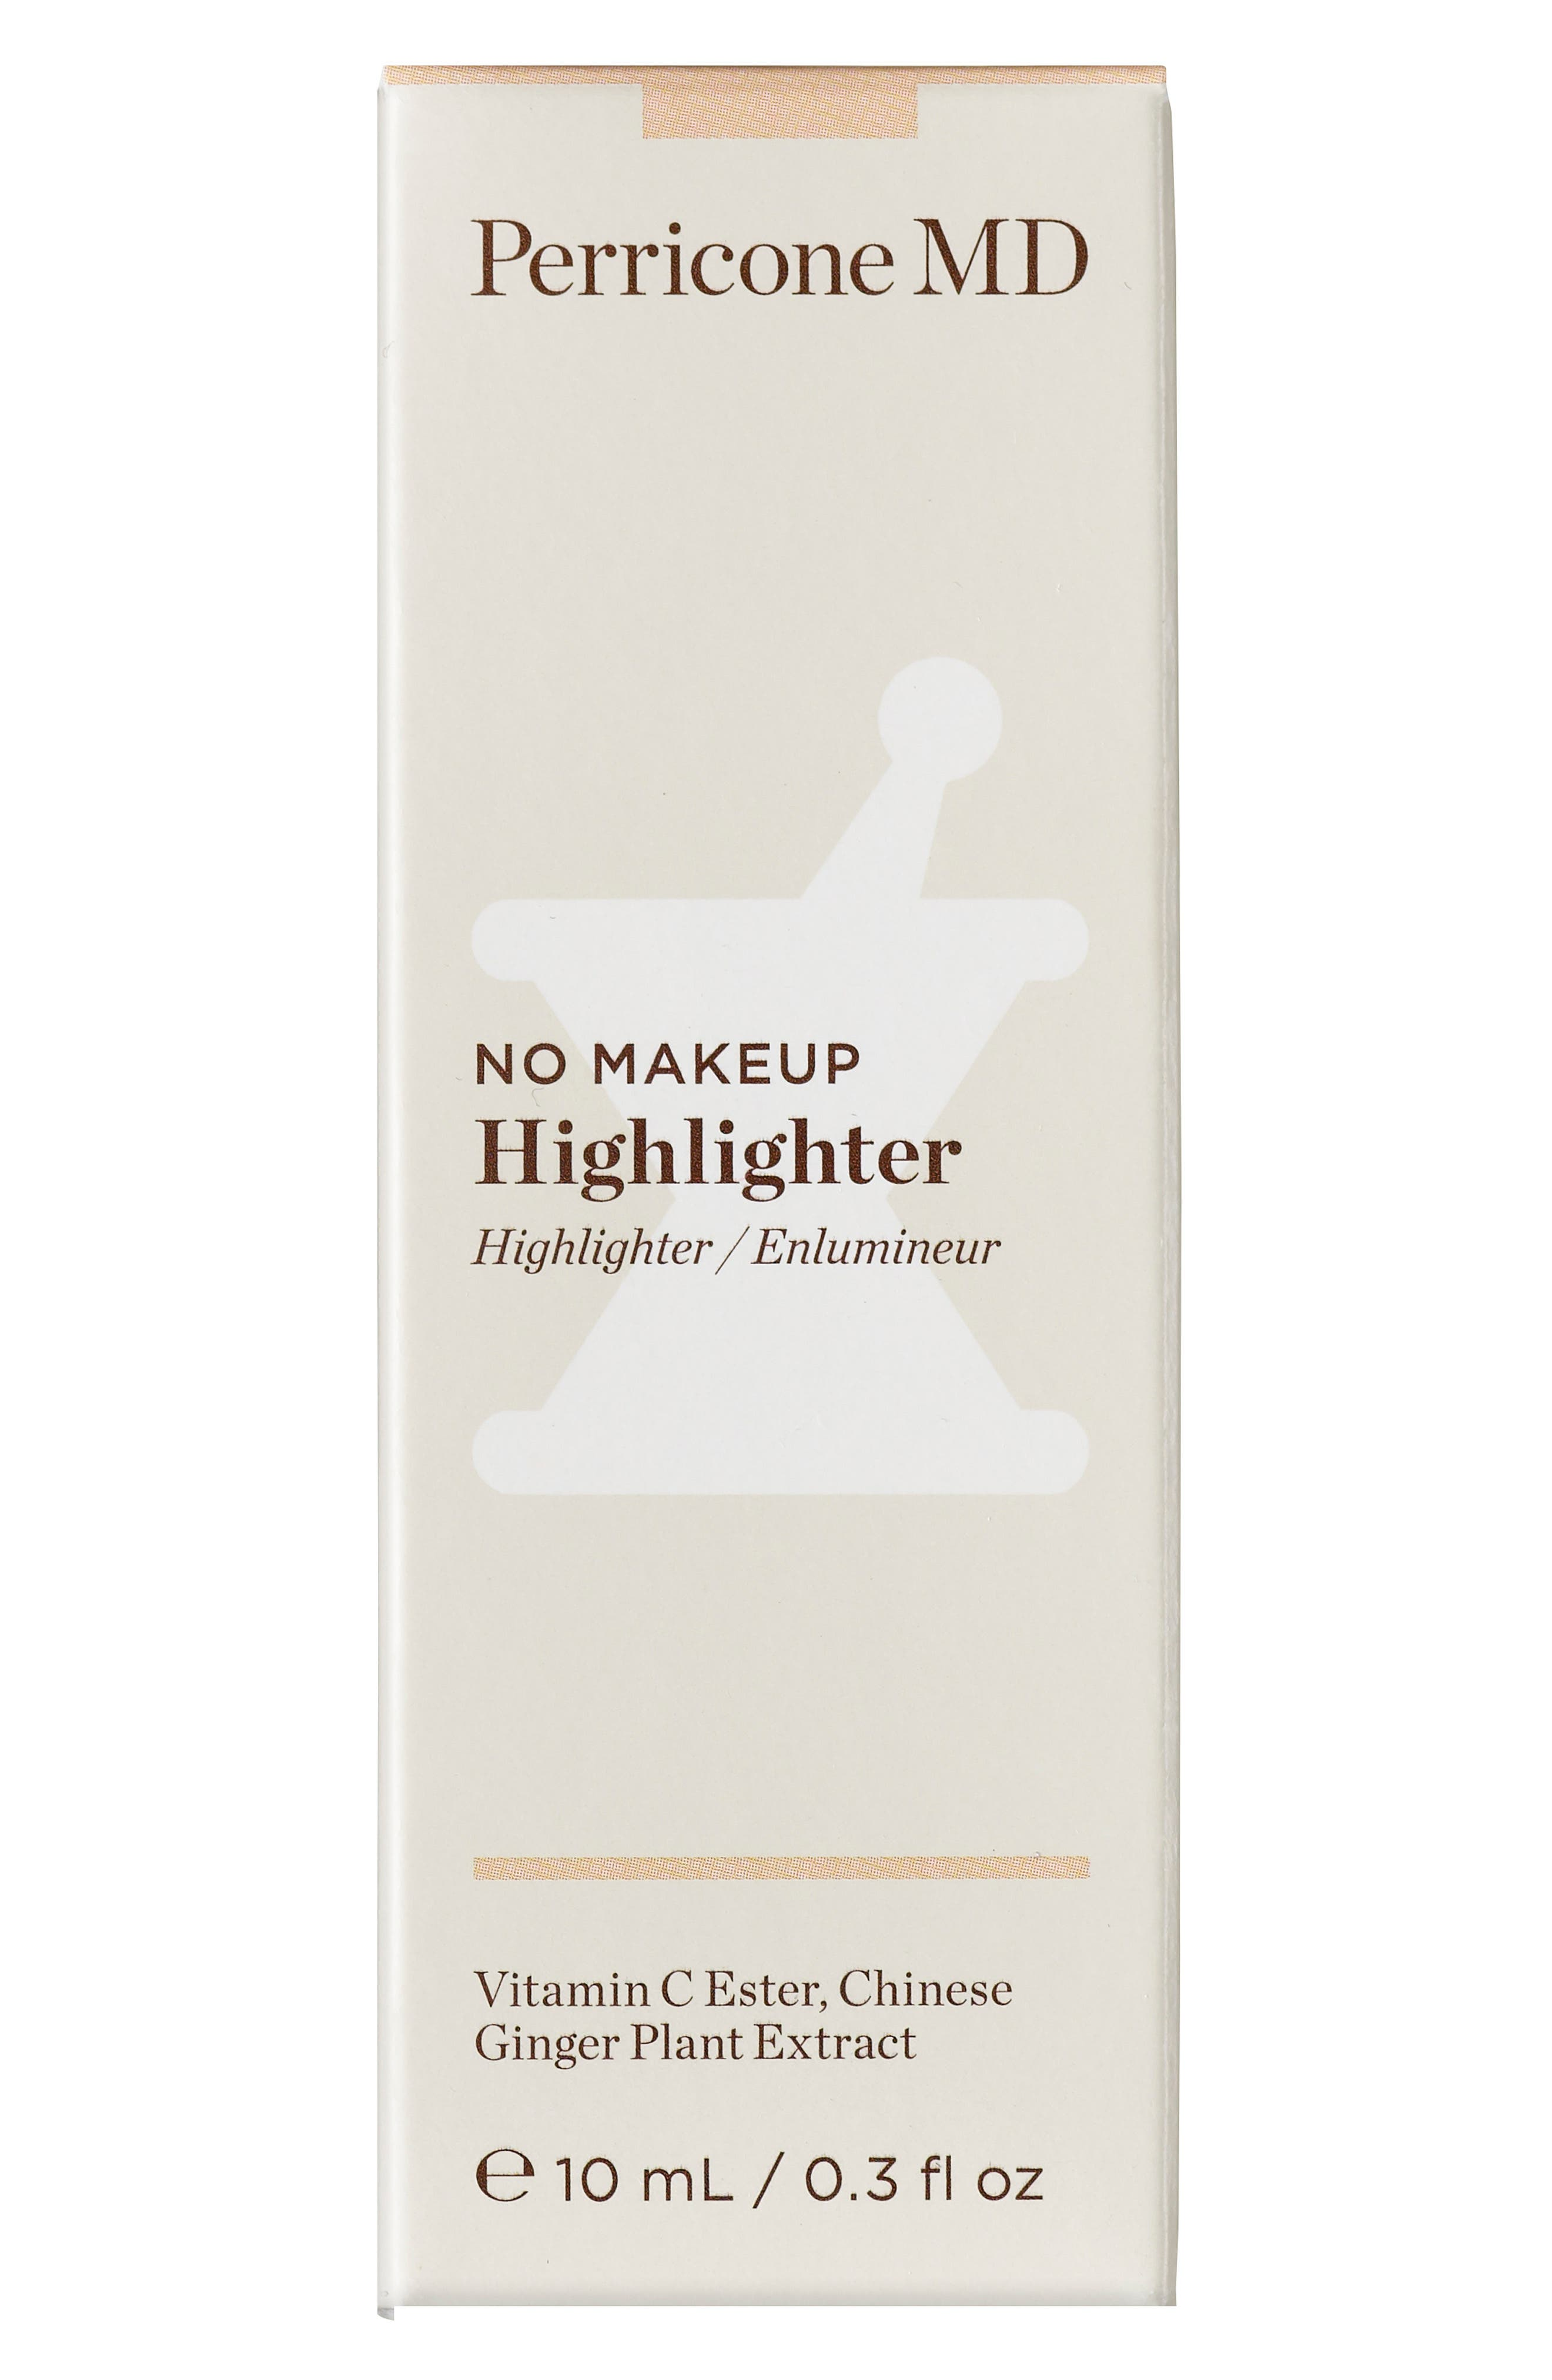 PERRICONE MD, No Makeup Highlighter, Alternate thumbnail 3, color, 000